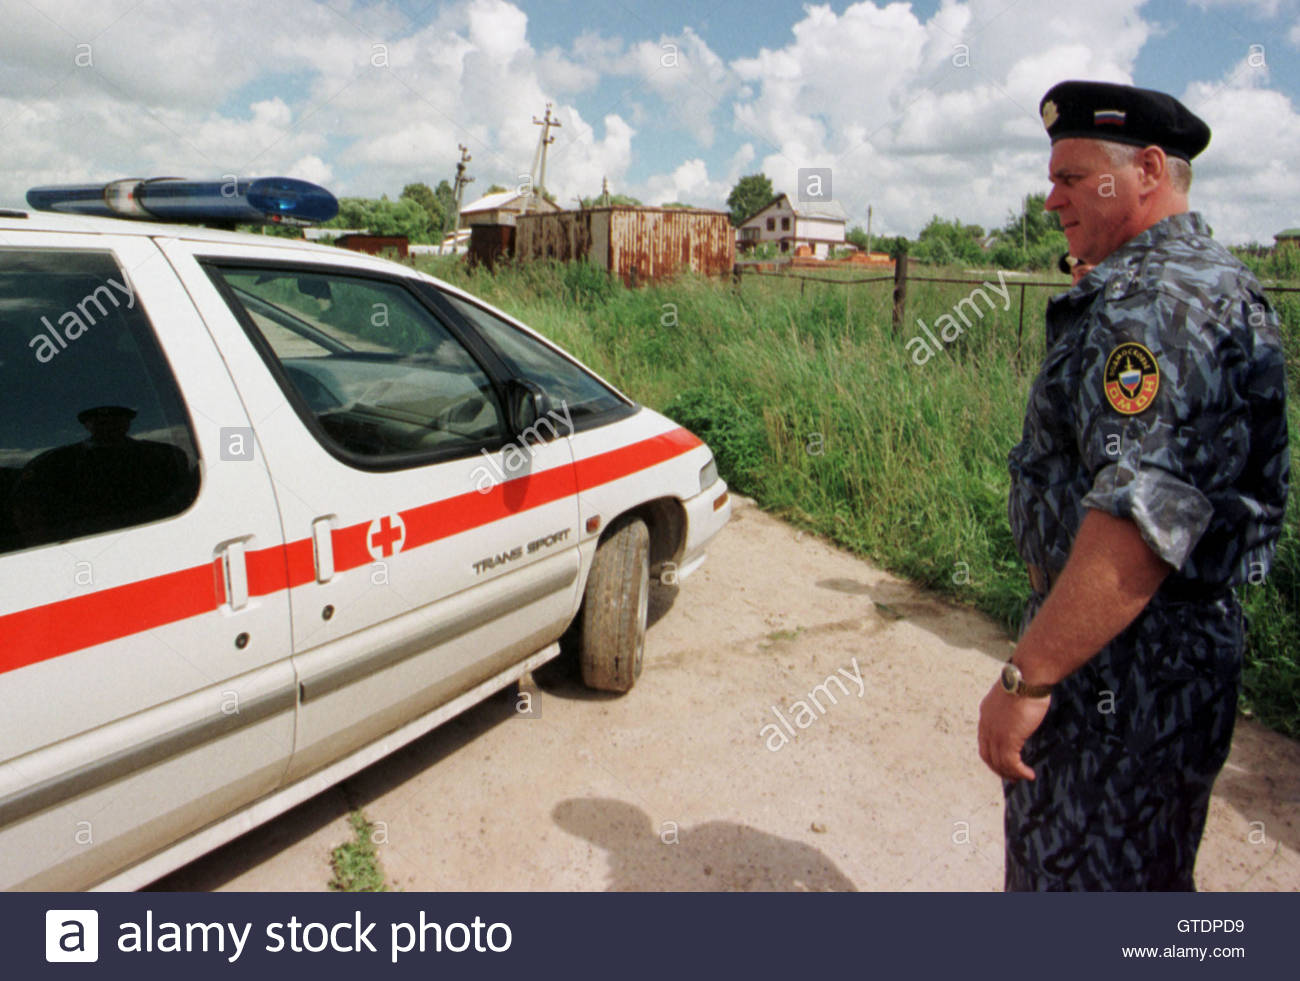 omon special police officer watches the ambulance carrying the omon special police officer watches the ambulance carrying the body of retired general lev rokhlin